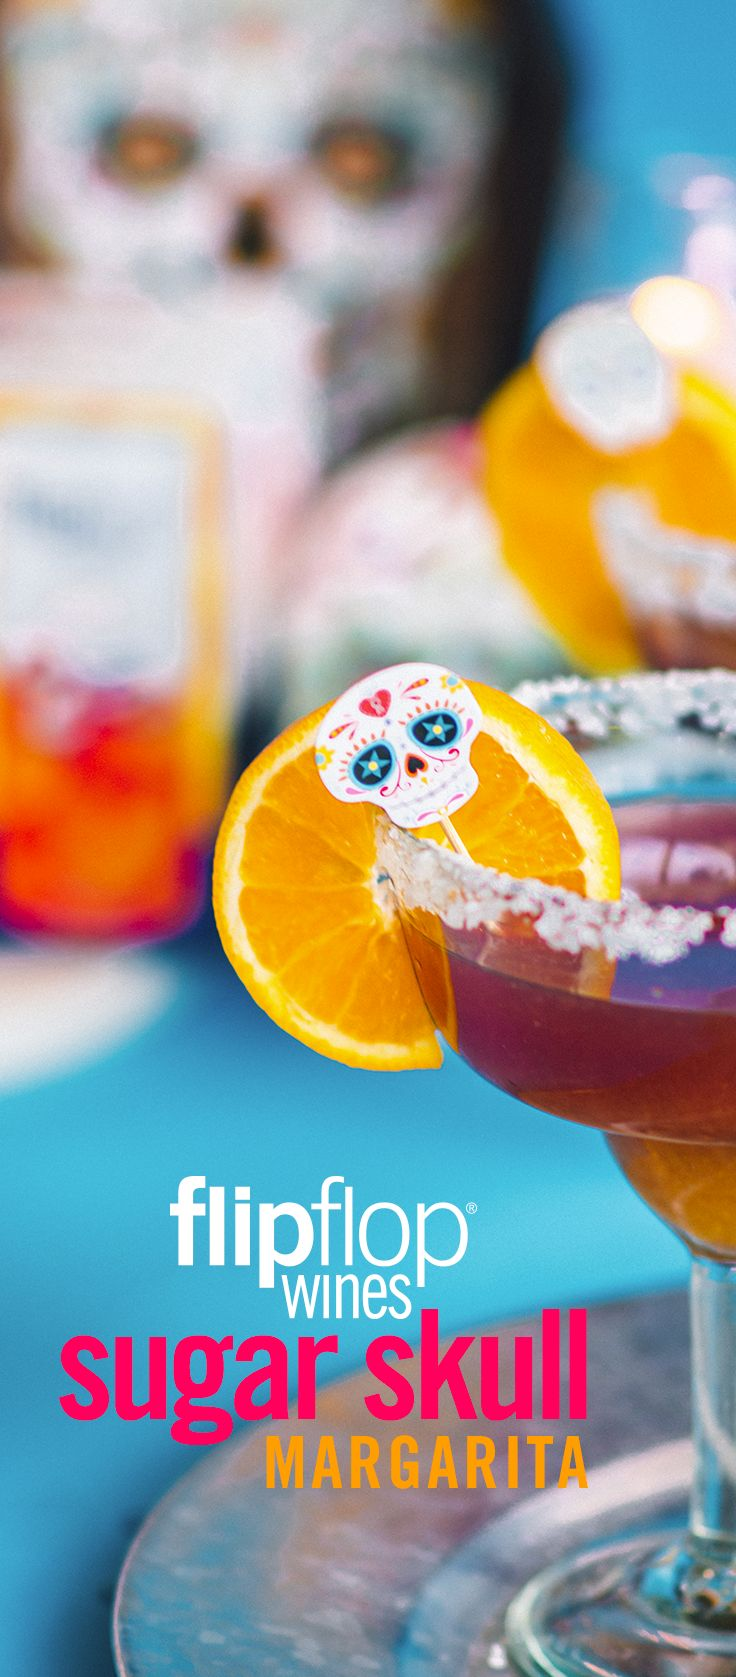 Flipflop Sugar Skull Margarita  What you'll need: 2 oz. freshly squeezed blood orange juice 1 tsp sugar (for the rim) 1 oz Cointreau 1 ½ oz. Tequila 1/2 can of Flipflop Fizzy Sangria